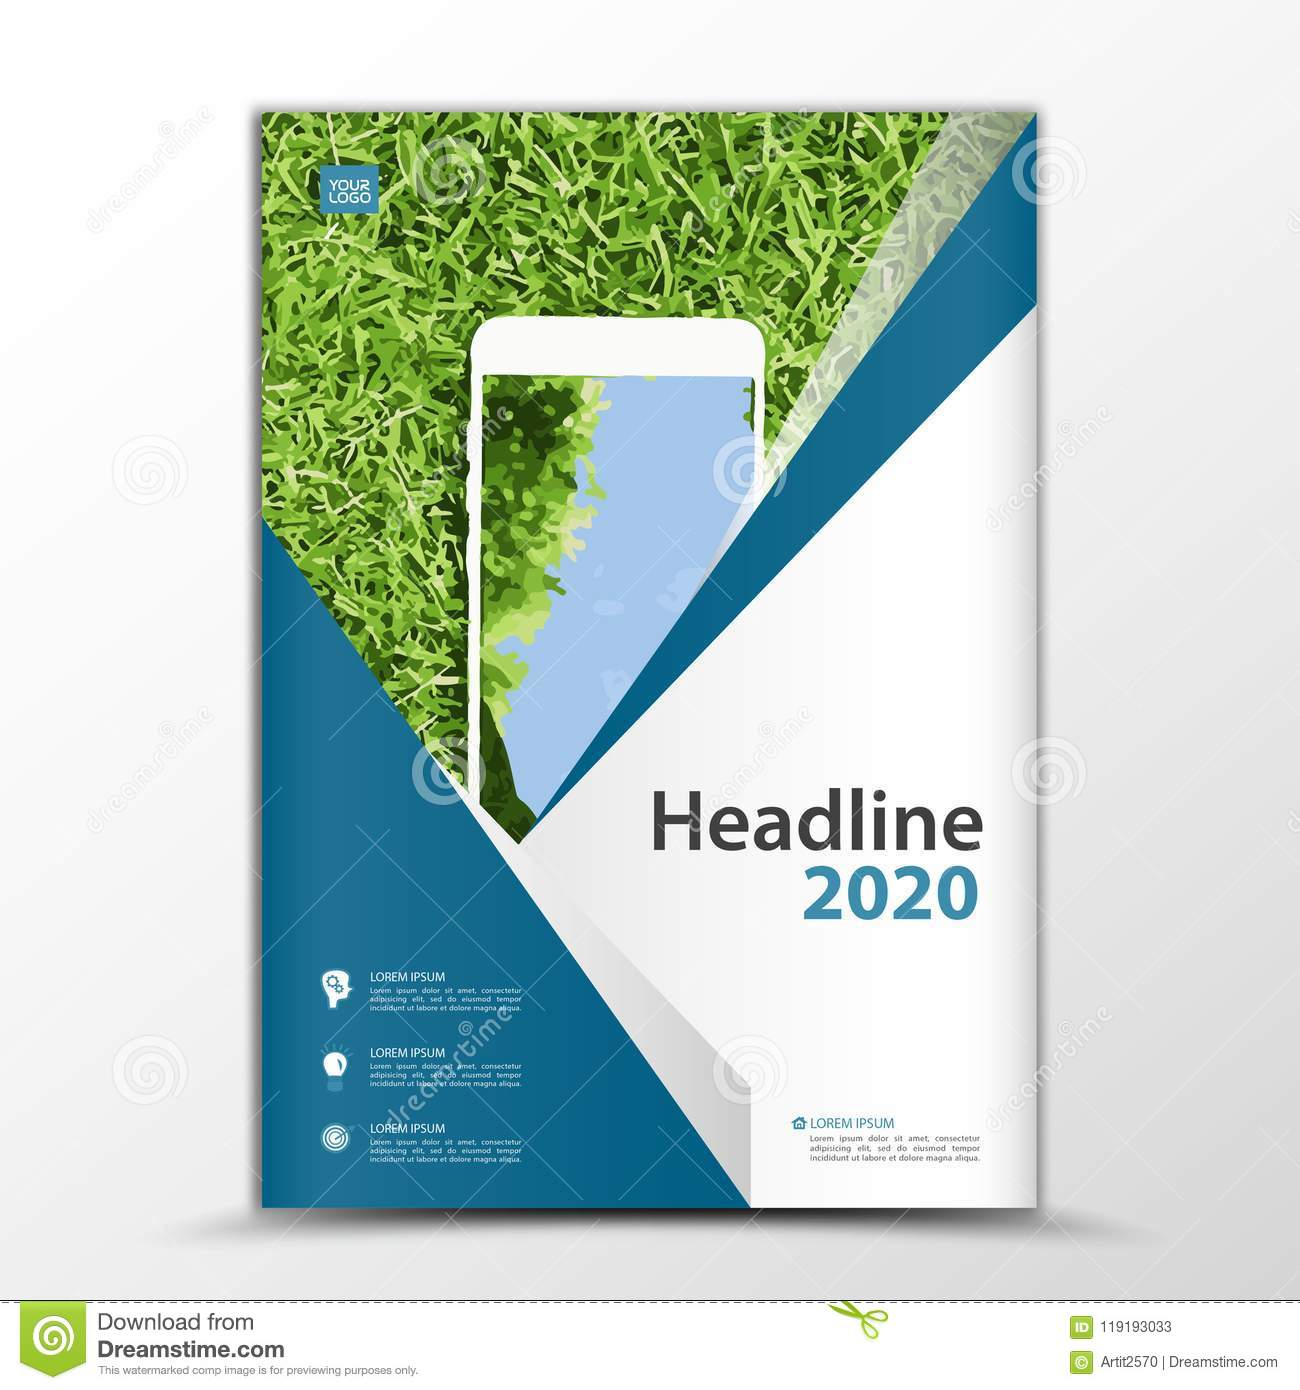 Mobile Apps Flyer, Cover Design, Smartphon Ad, Annual Report Cover With Mobile Book Report Template